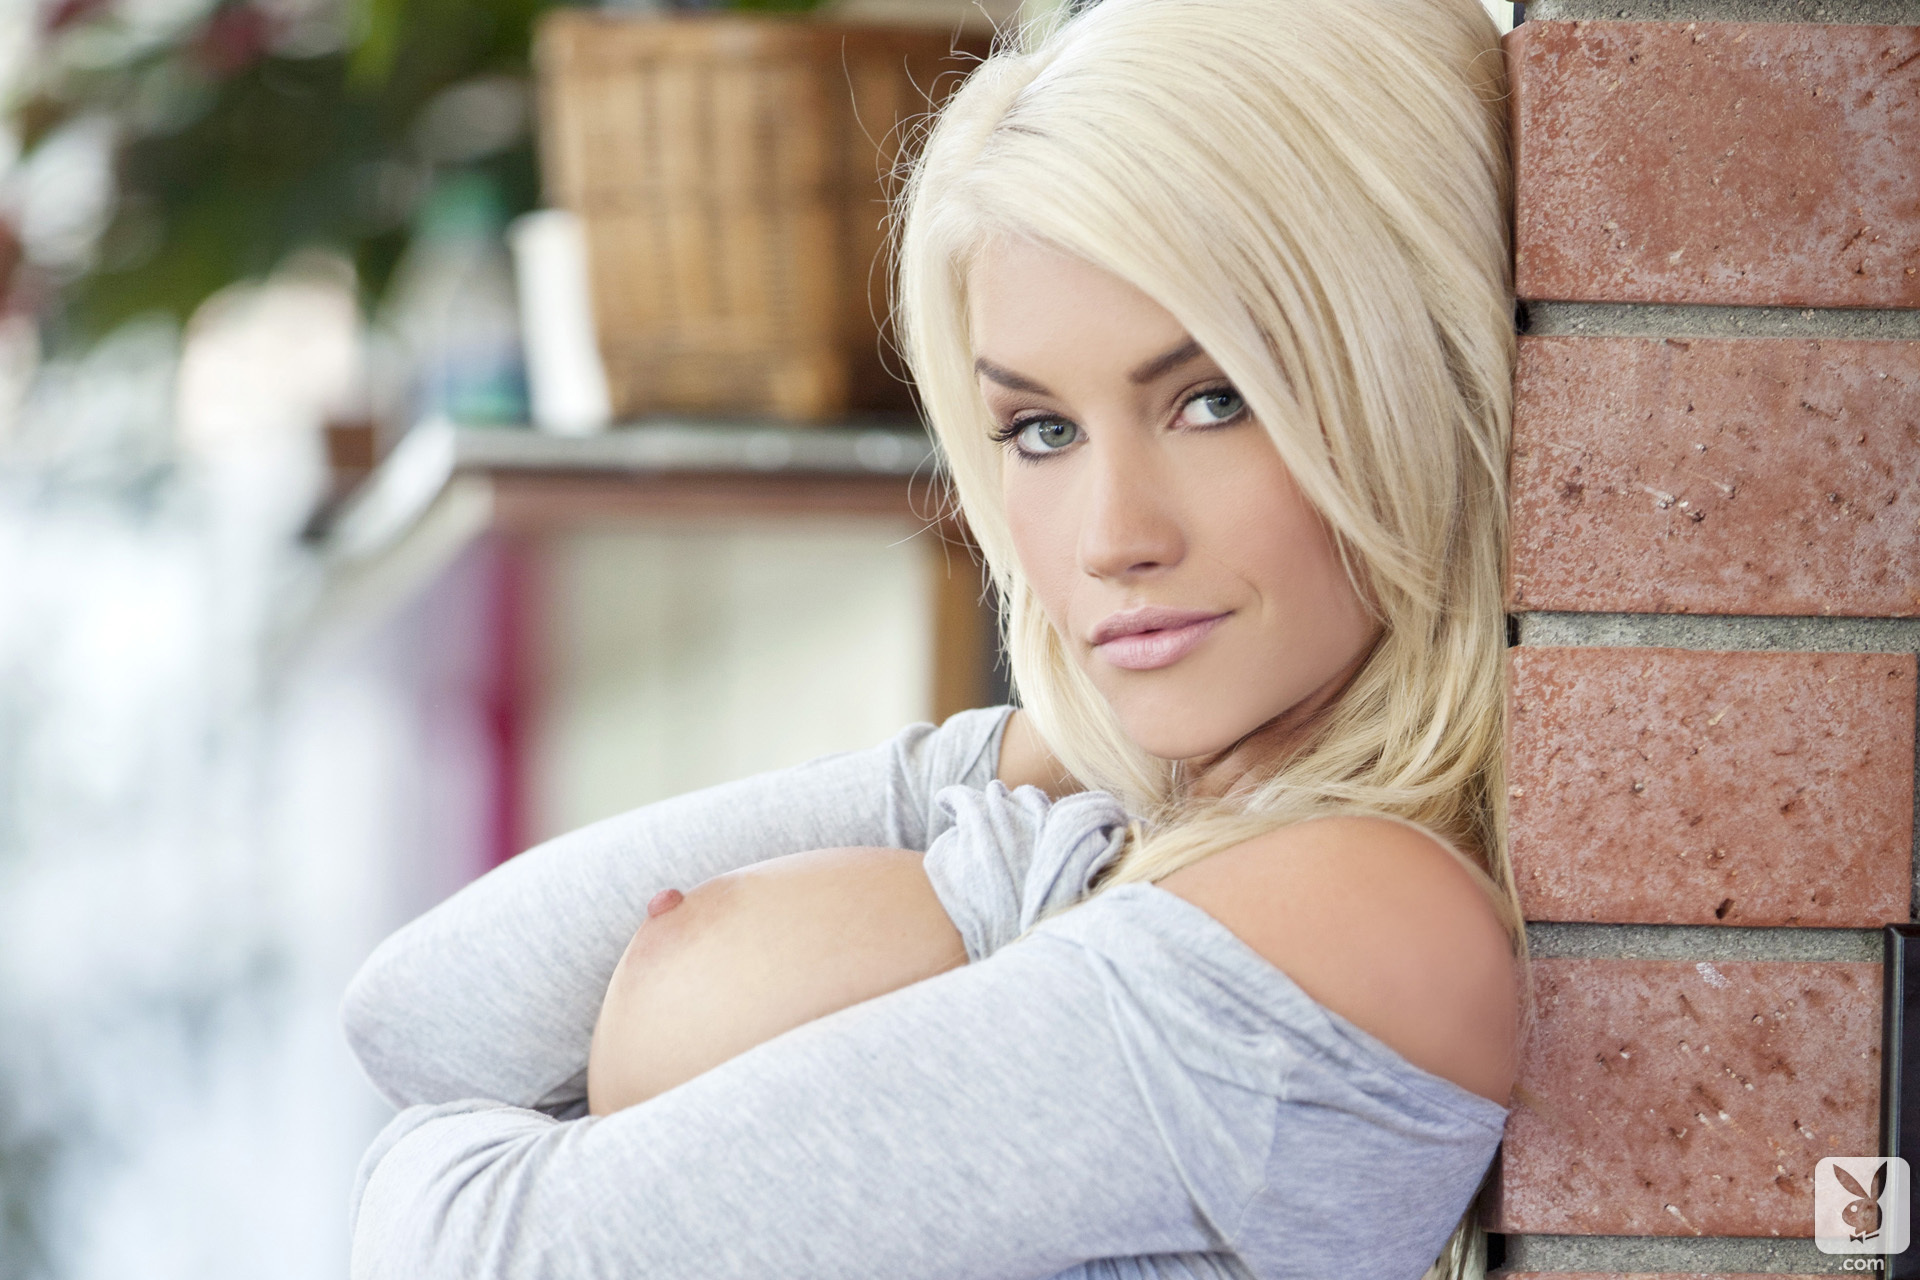 Taylor Seinturier Cybergirl Of The Month July 2012 Blonde Lust (6)